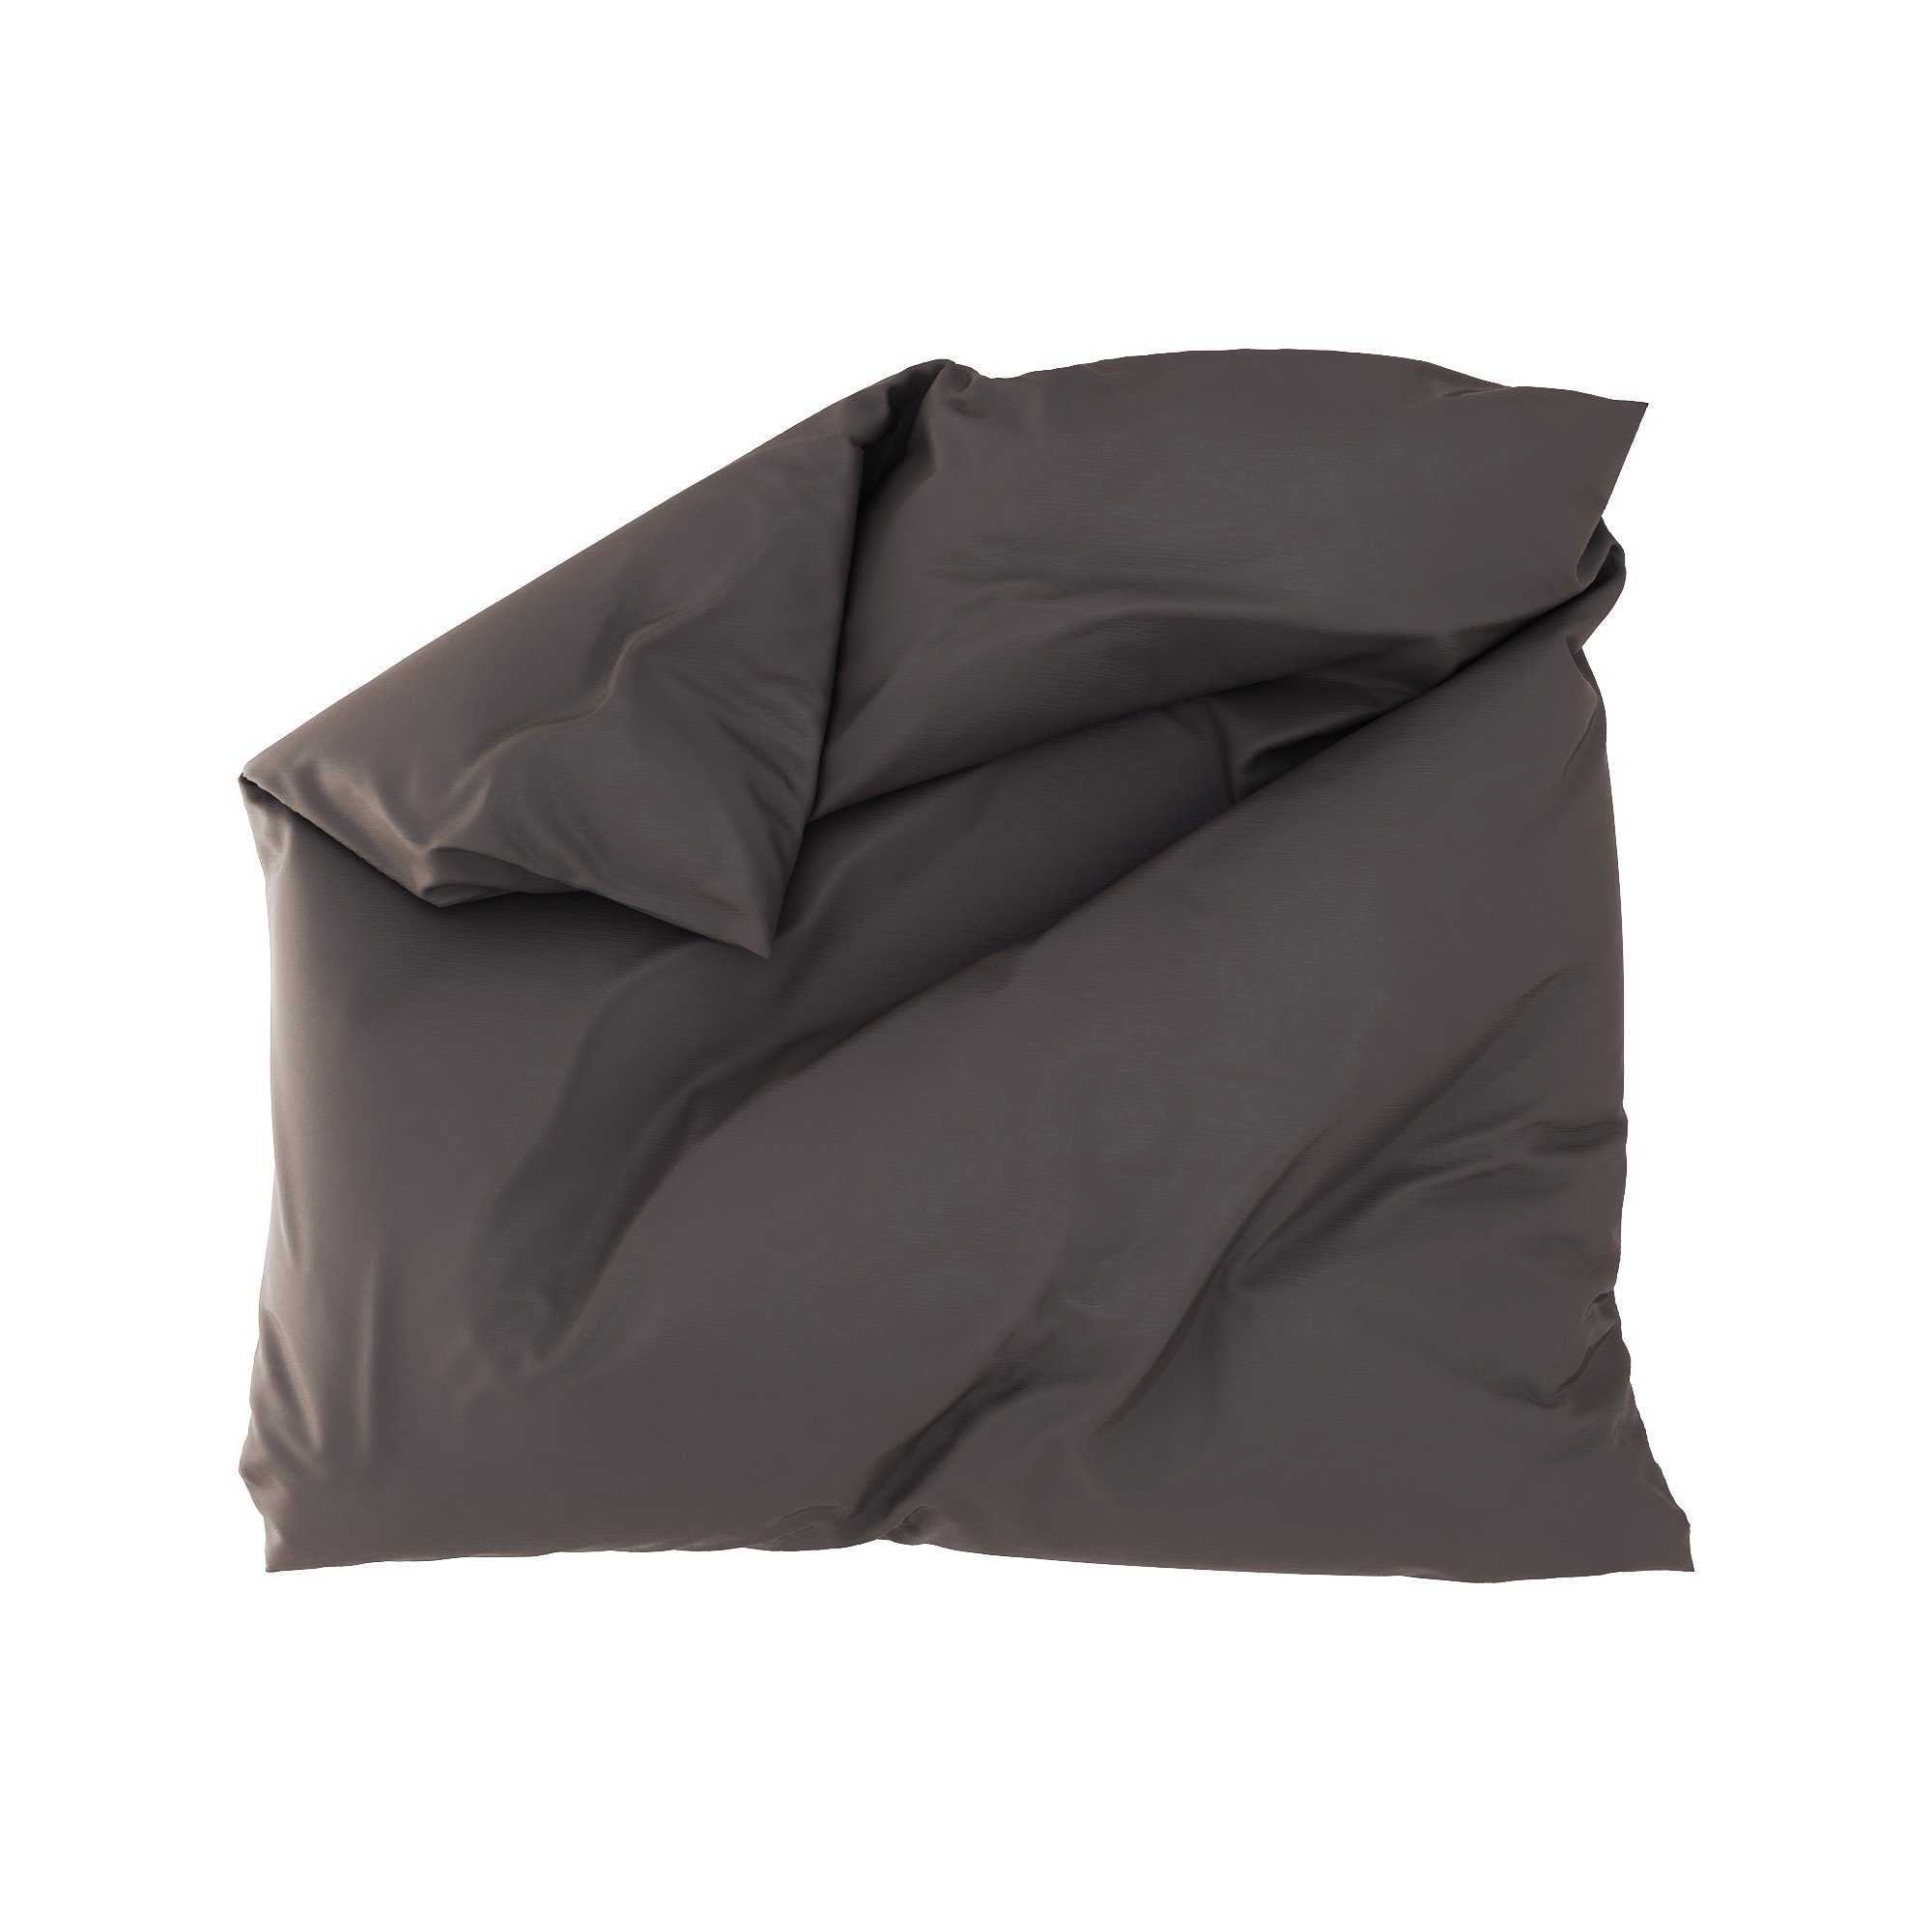 Premium duvet cover 14 Dark grey